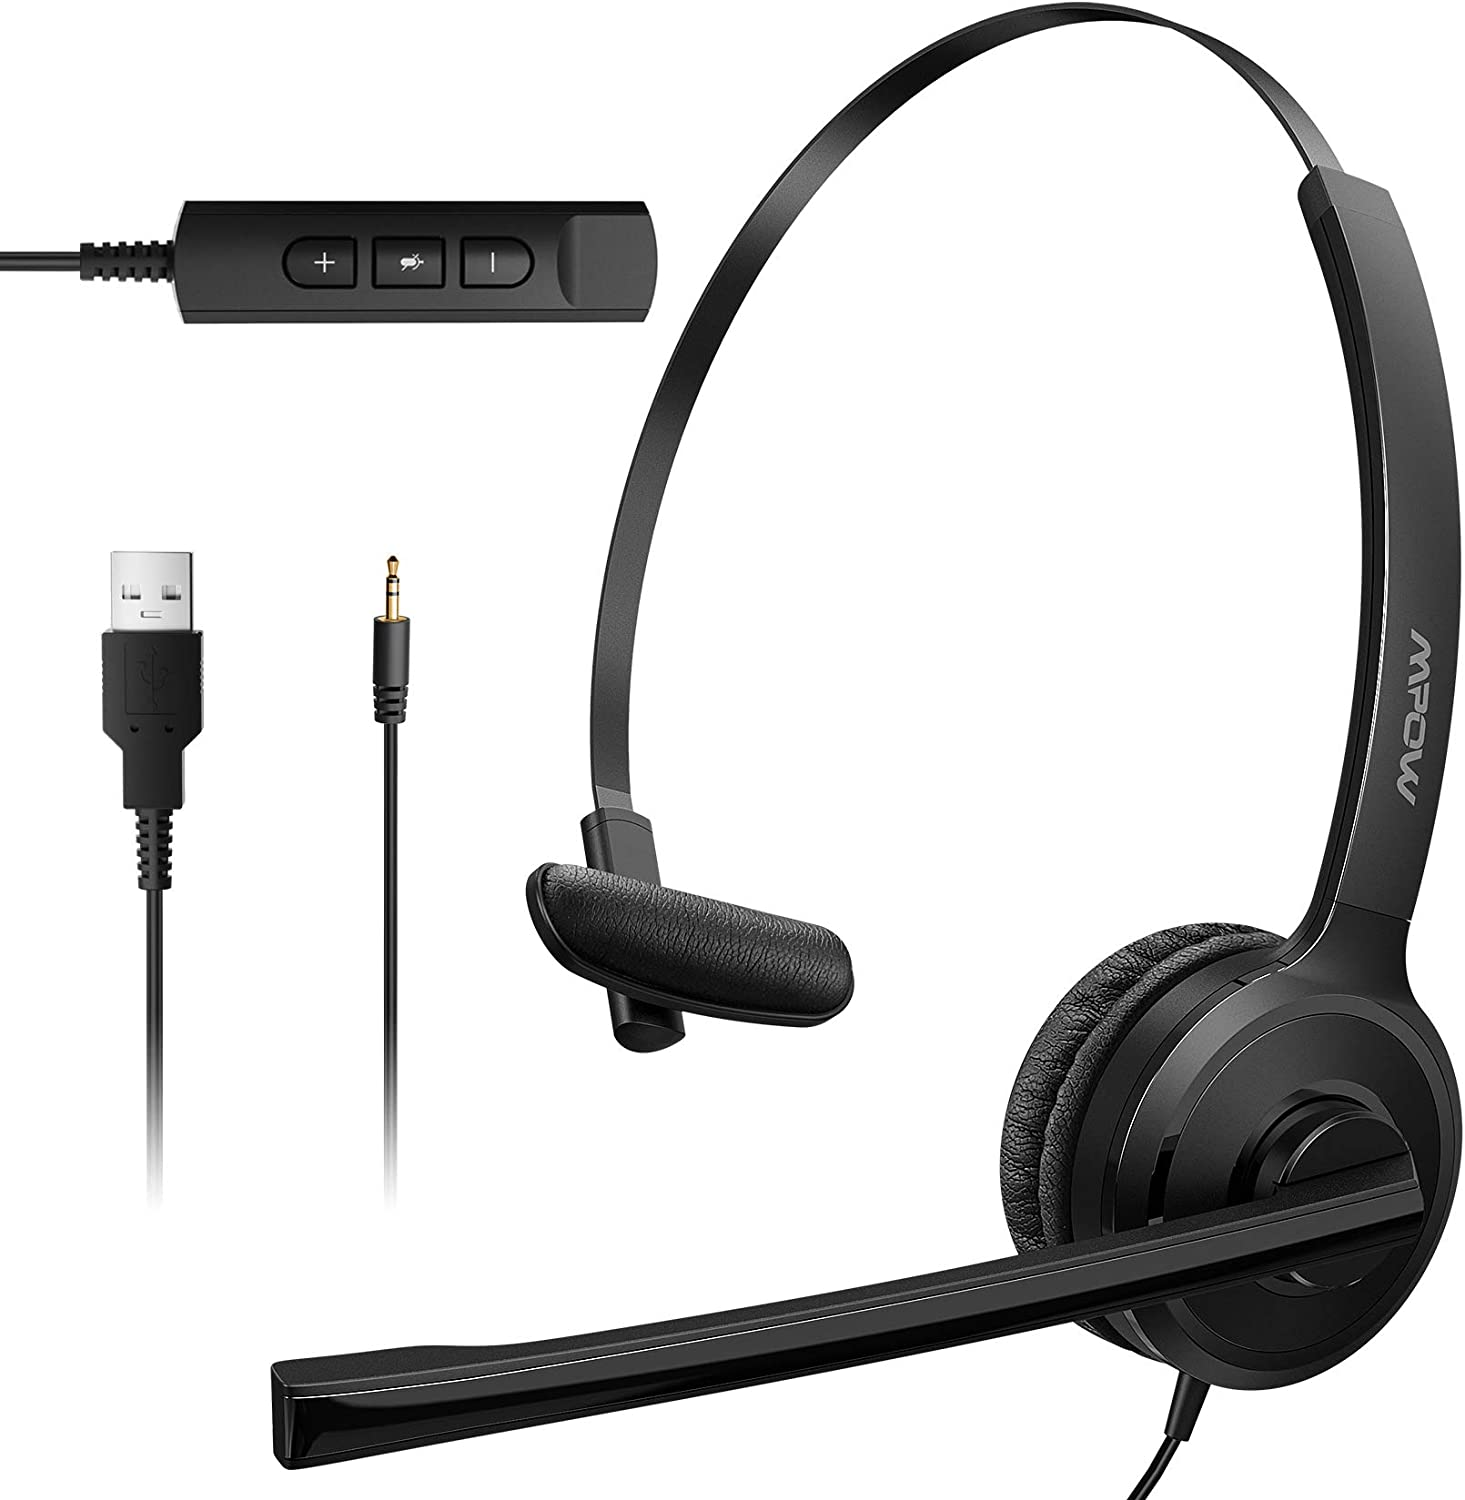 Mpow 2.5mm Phone Headsets with Microphone Noise Cancelling, Single-Sided USB Headset with Mute/Volume Control for Computer, Comfort-Fit VOIP Headset for AT&T, Panasonic, Vtech, Uniden, Cisco, Polycom